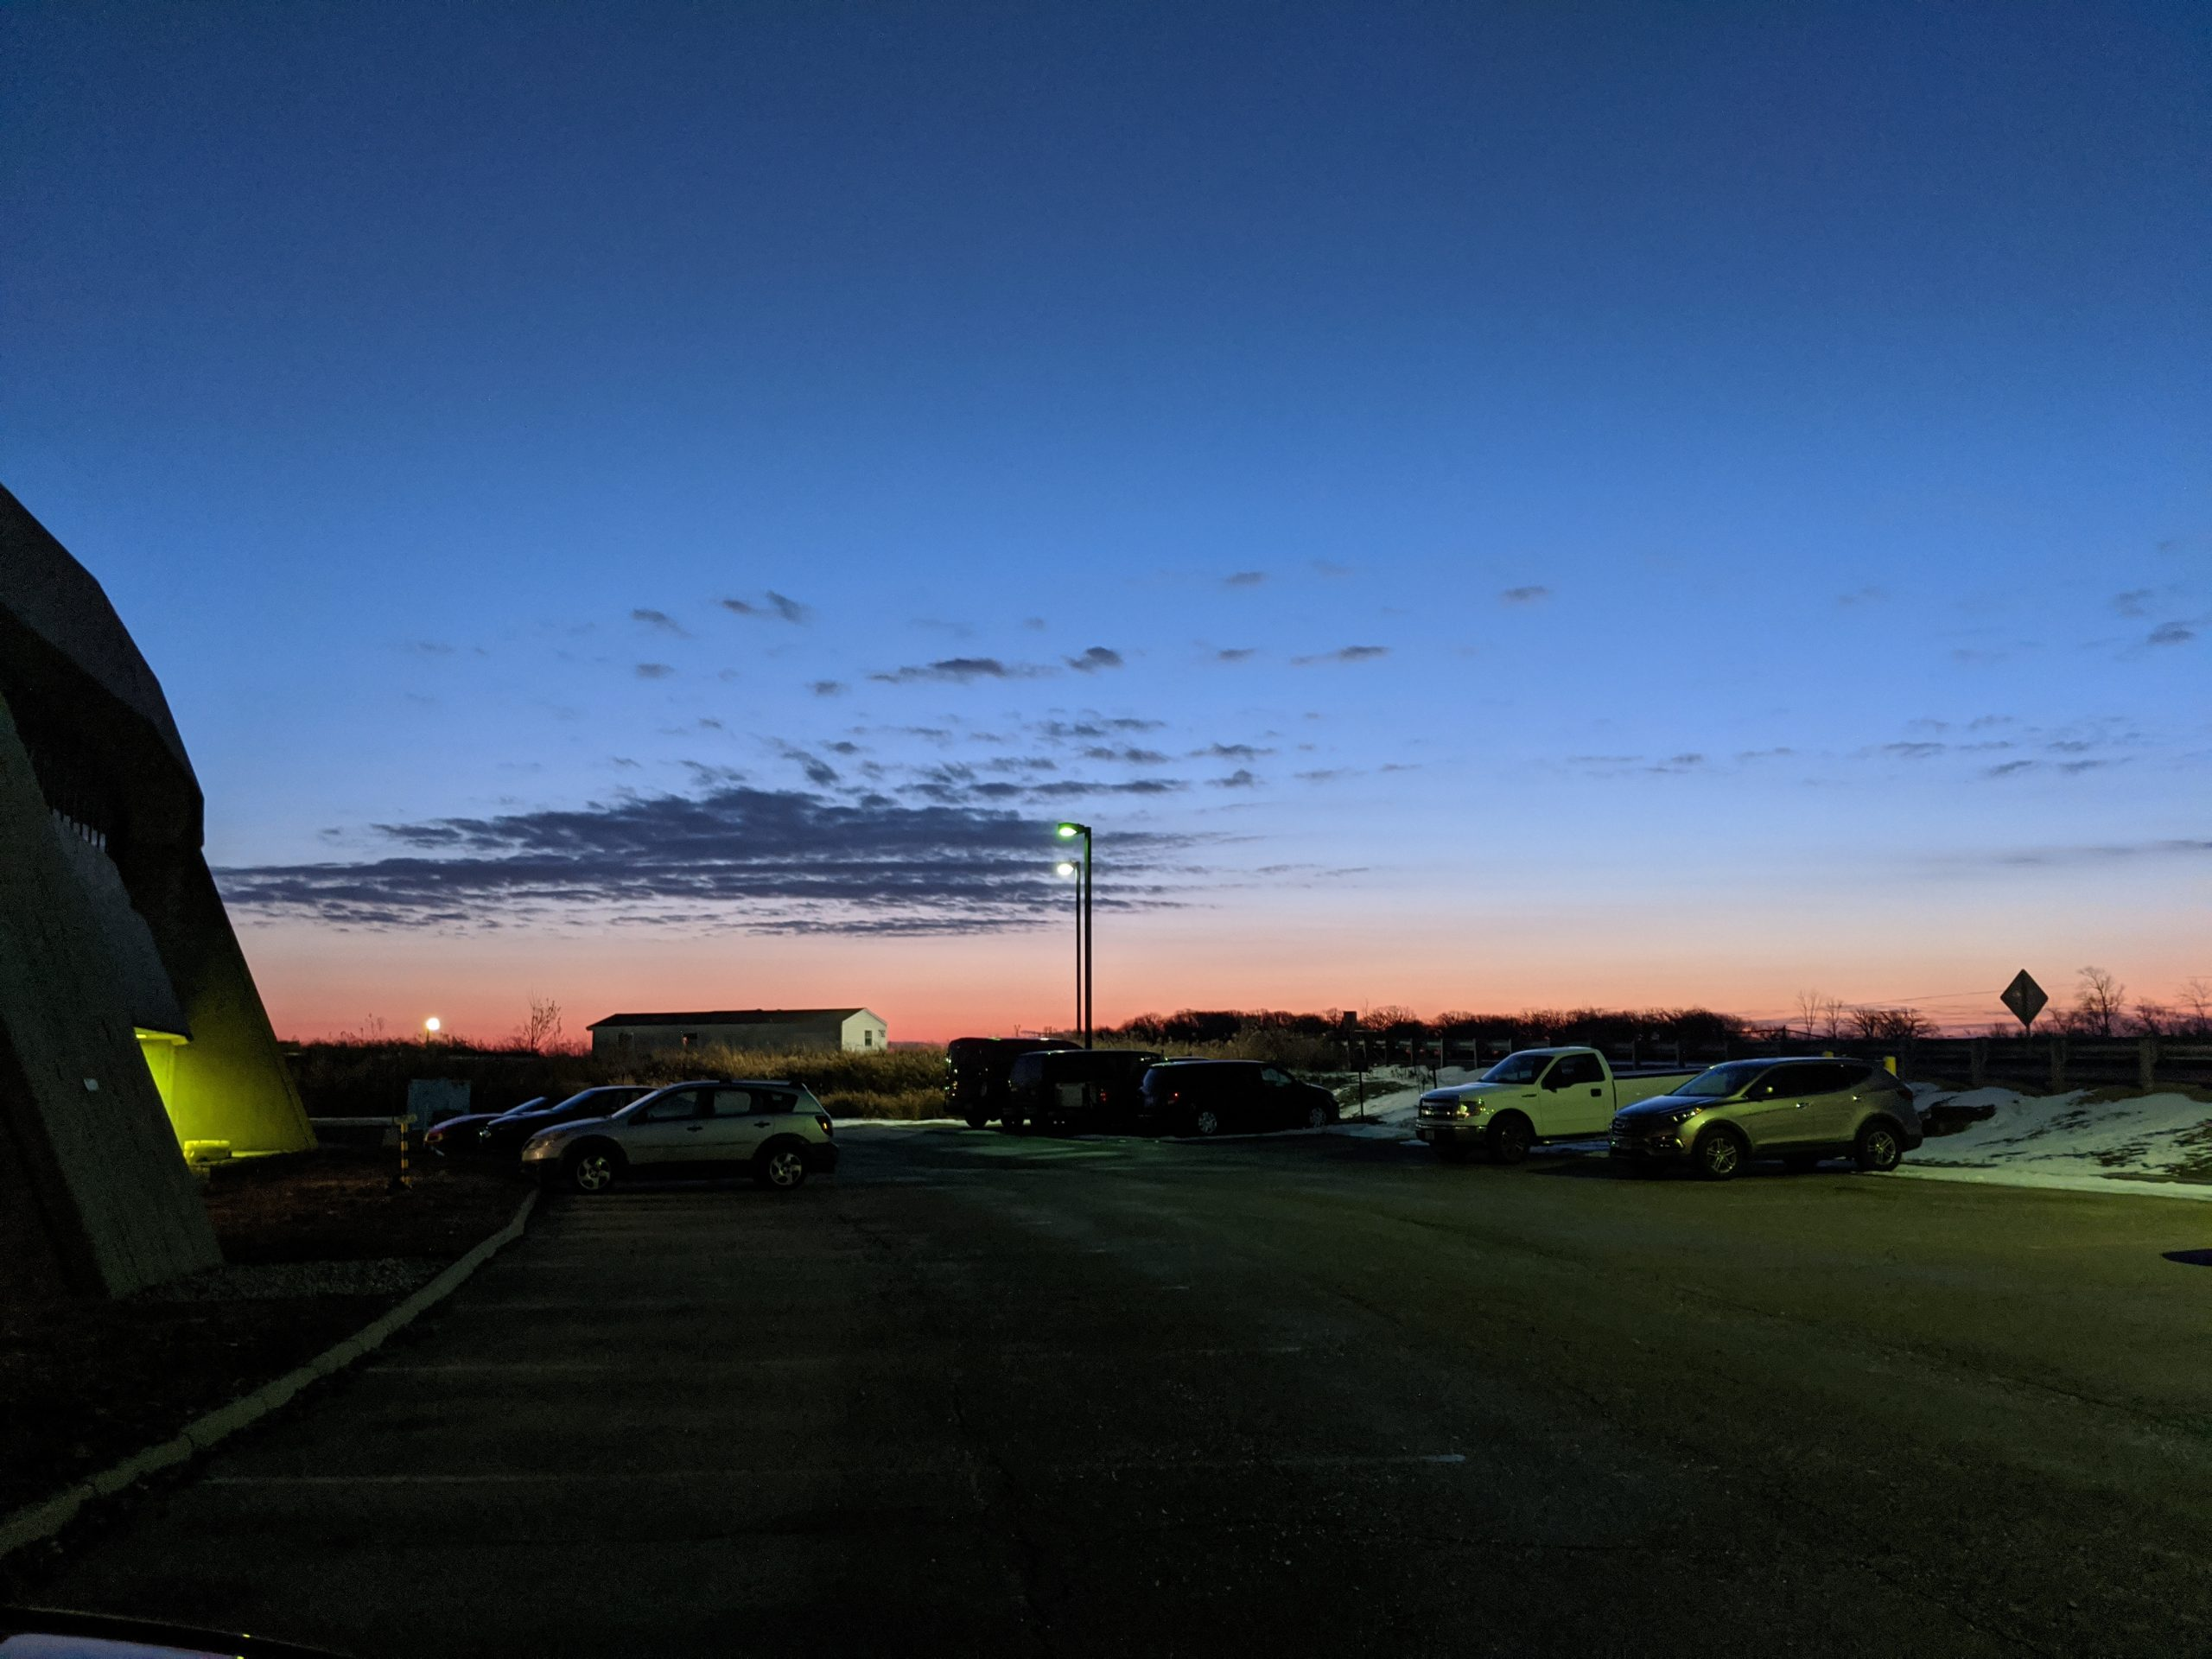 The day dawns, as seen from the Booster Tower East parking lot. nature, landscape, sunrise, sky Photo: Owen Marshall